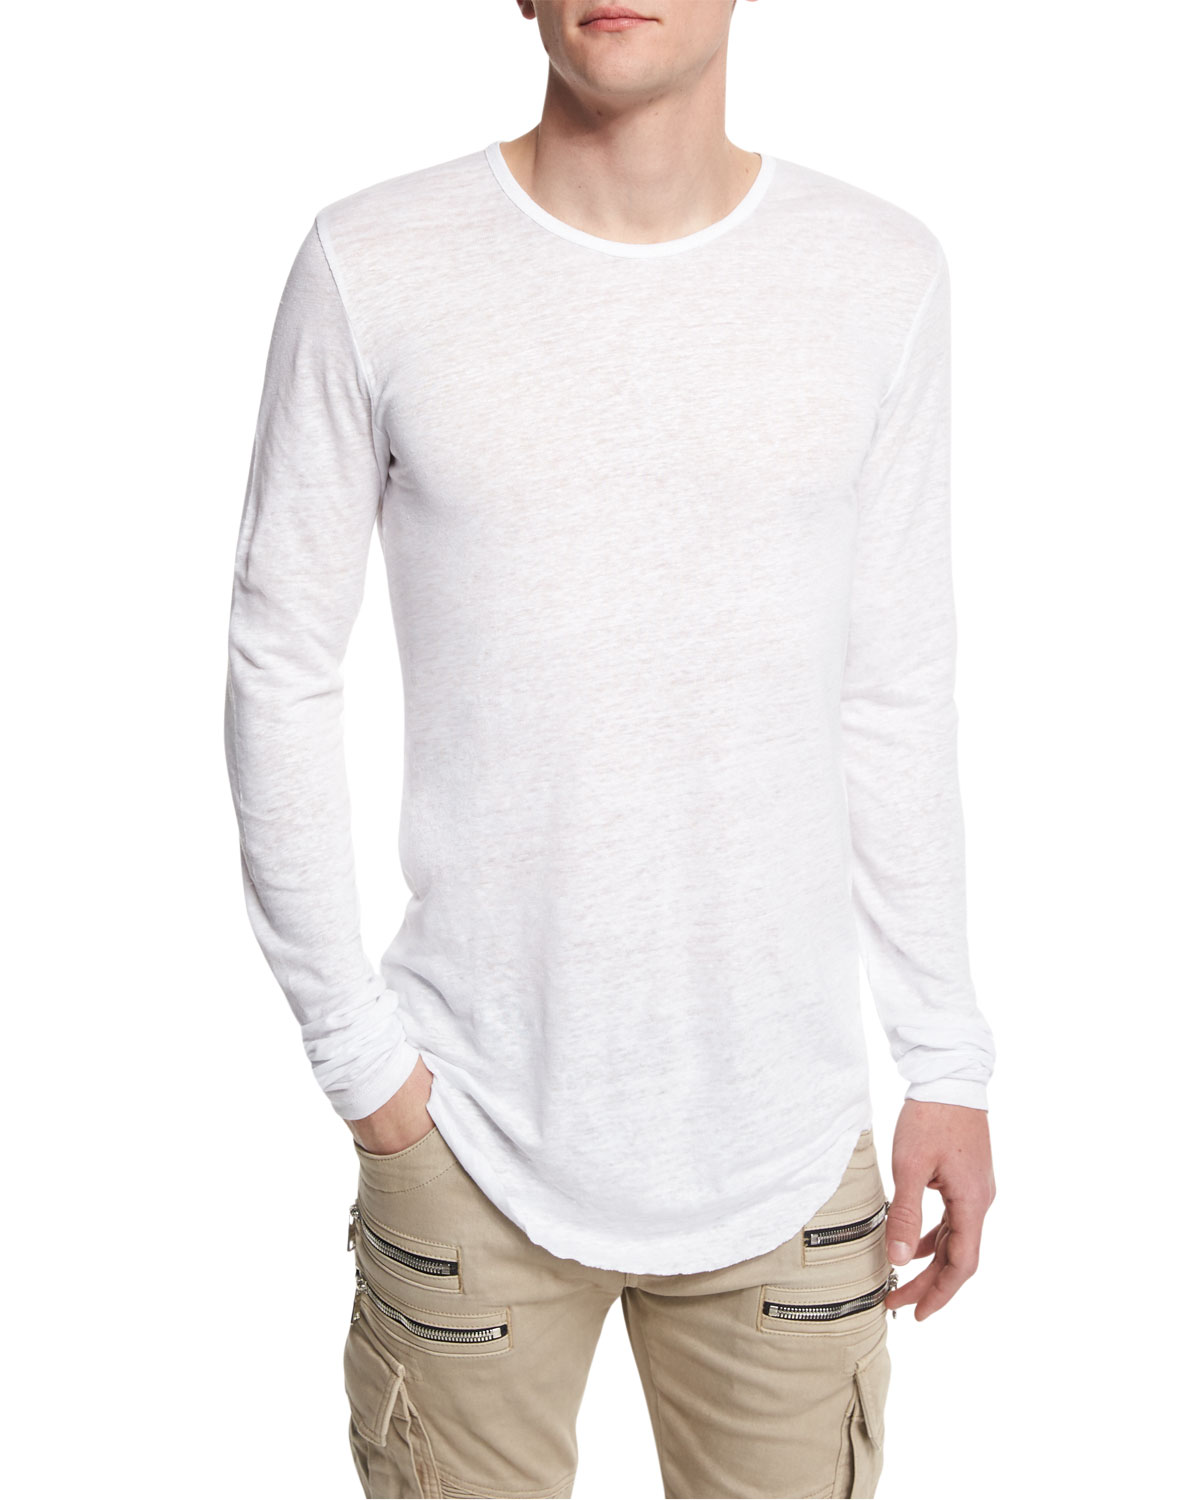 Long-Sleeve Linen Crewneck Shirt, White